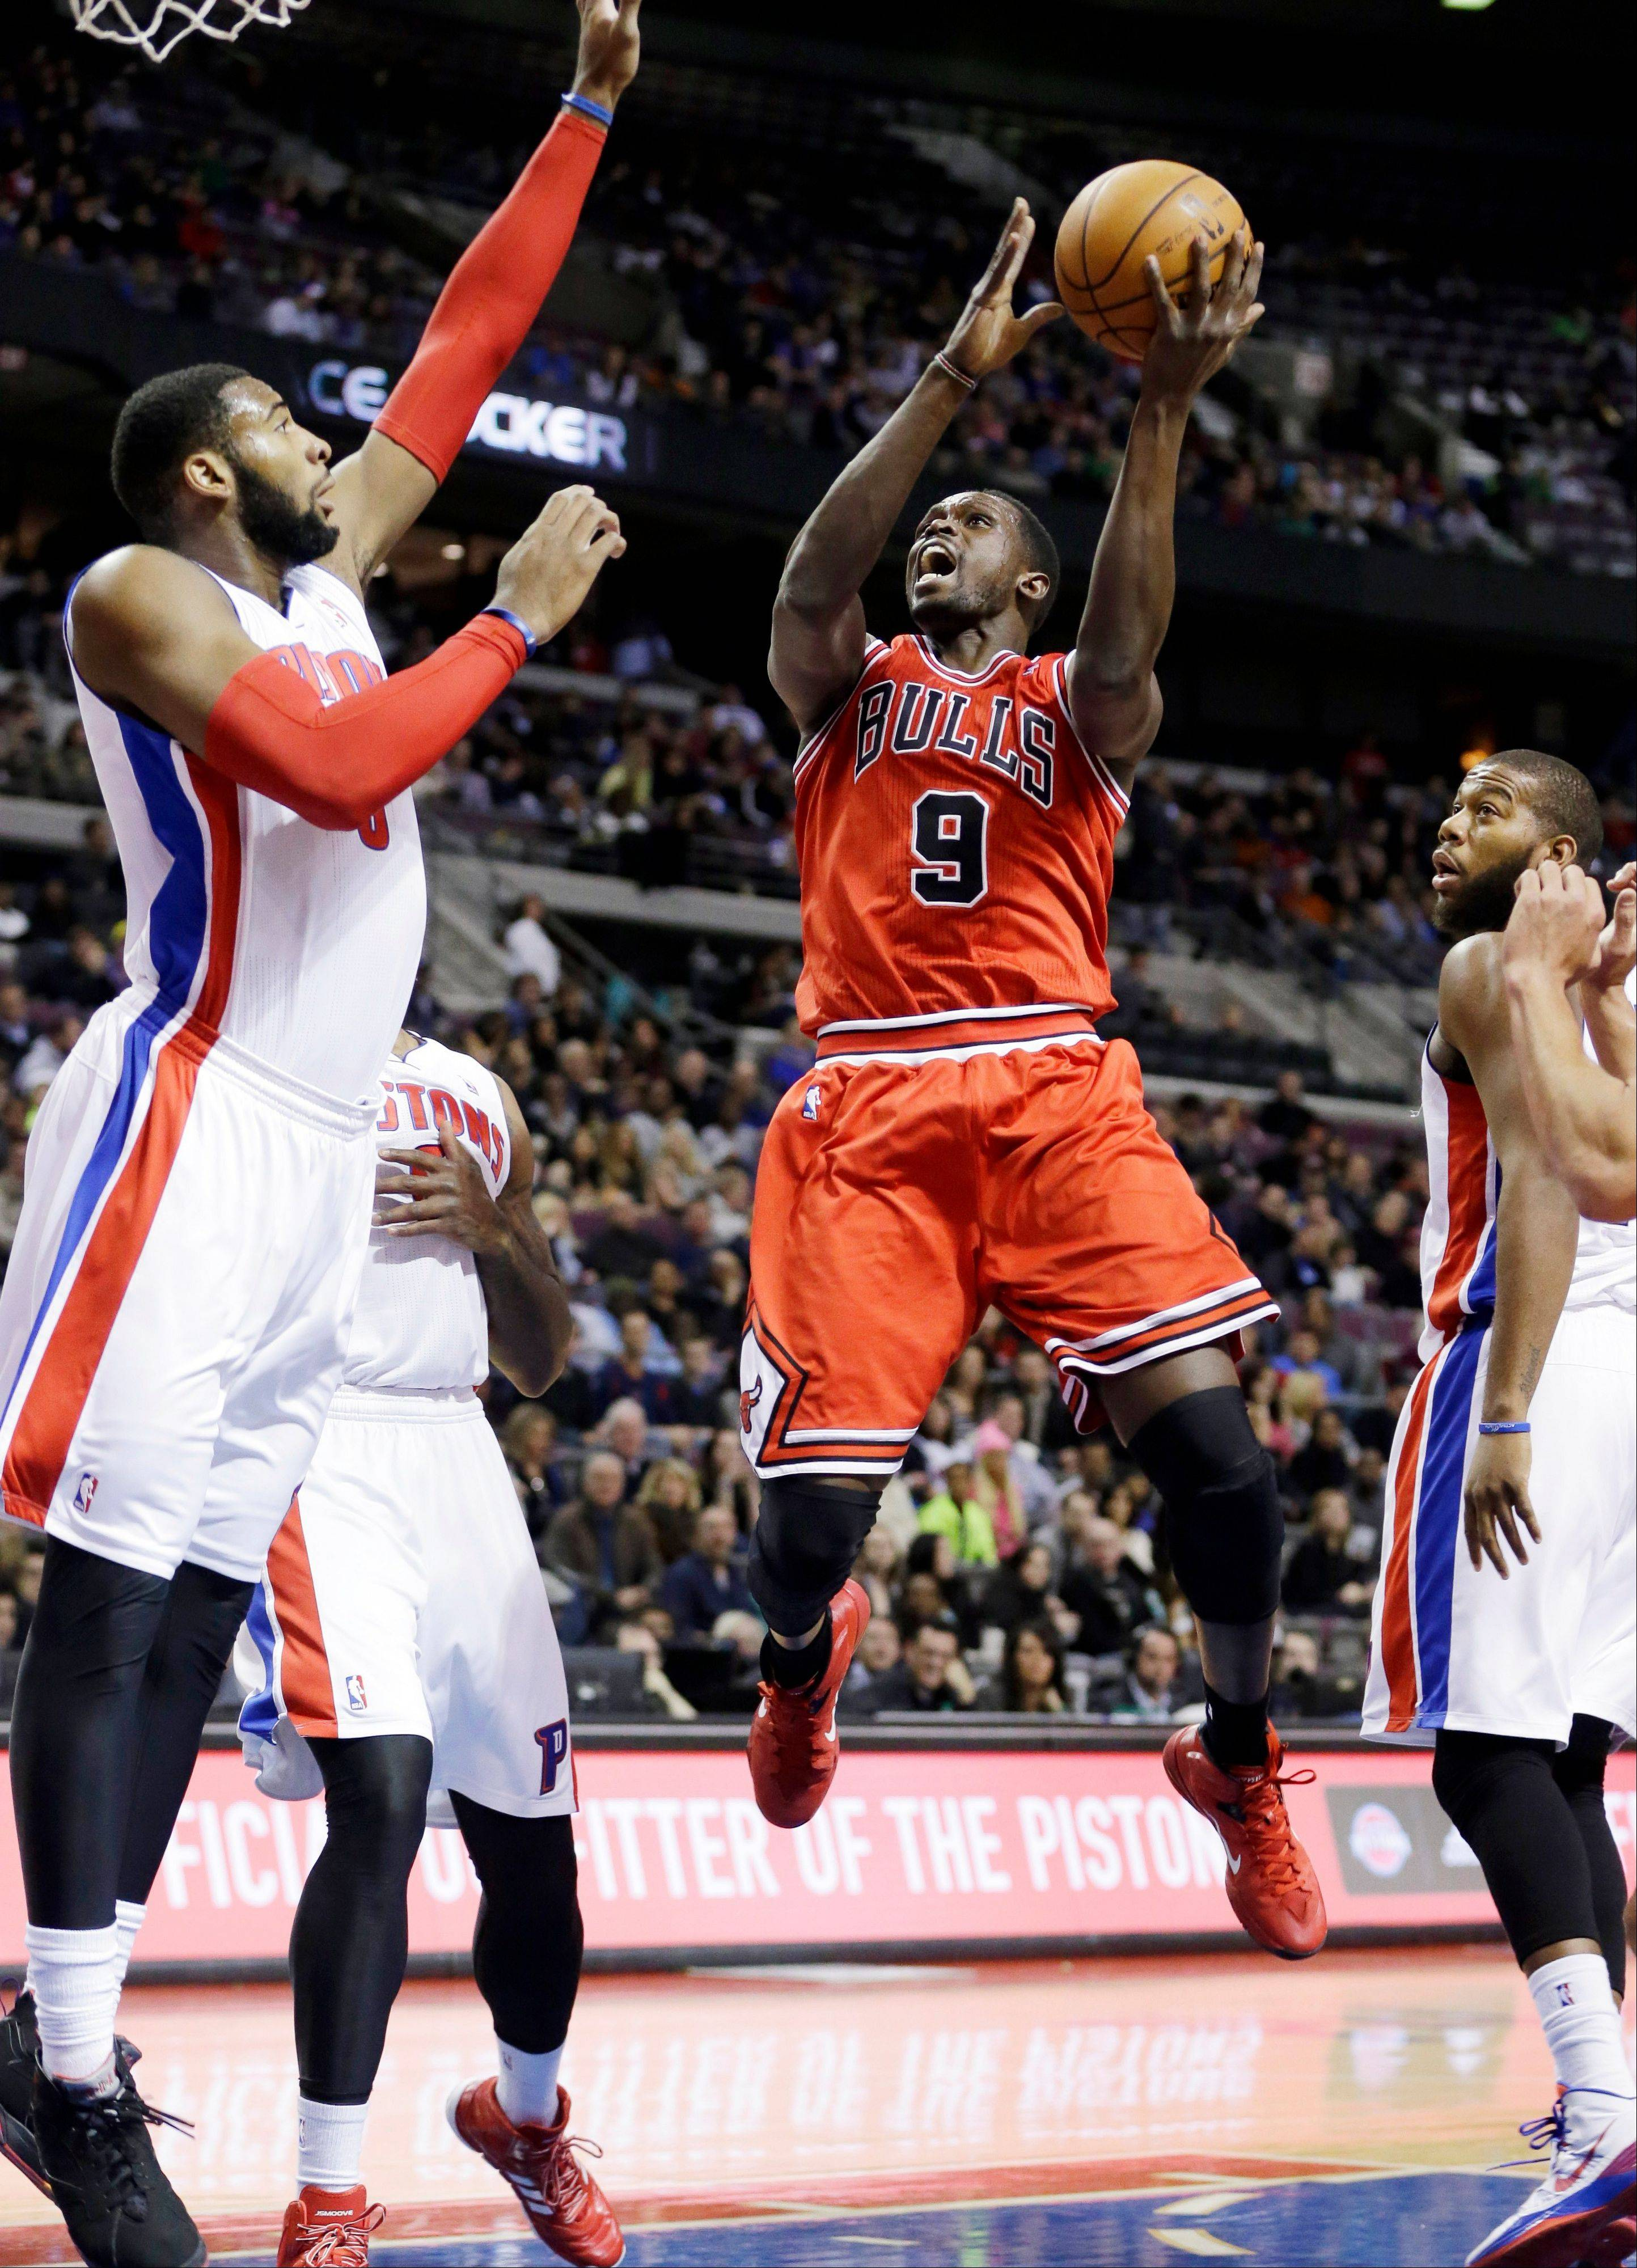 Luol Deng led the Bulls with 27 points, 6 rebounds and 5 assists, while hitting 11 of 17 shots from the field Wednesday against the Pistons in Detroit.